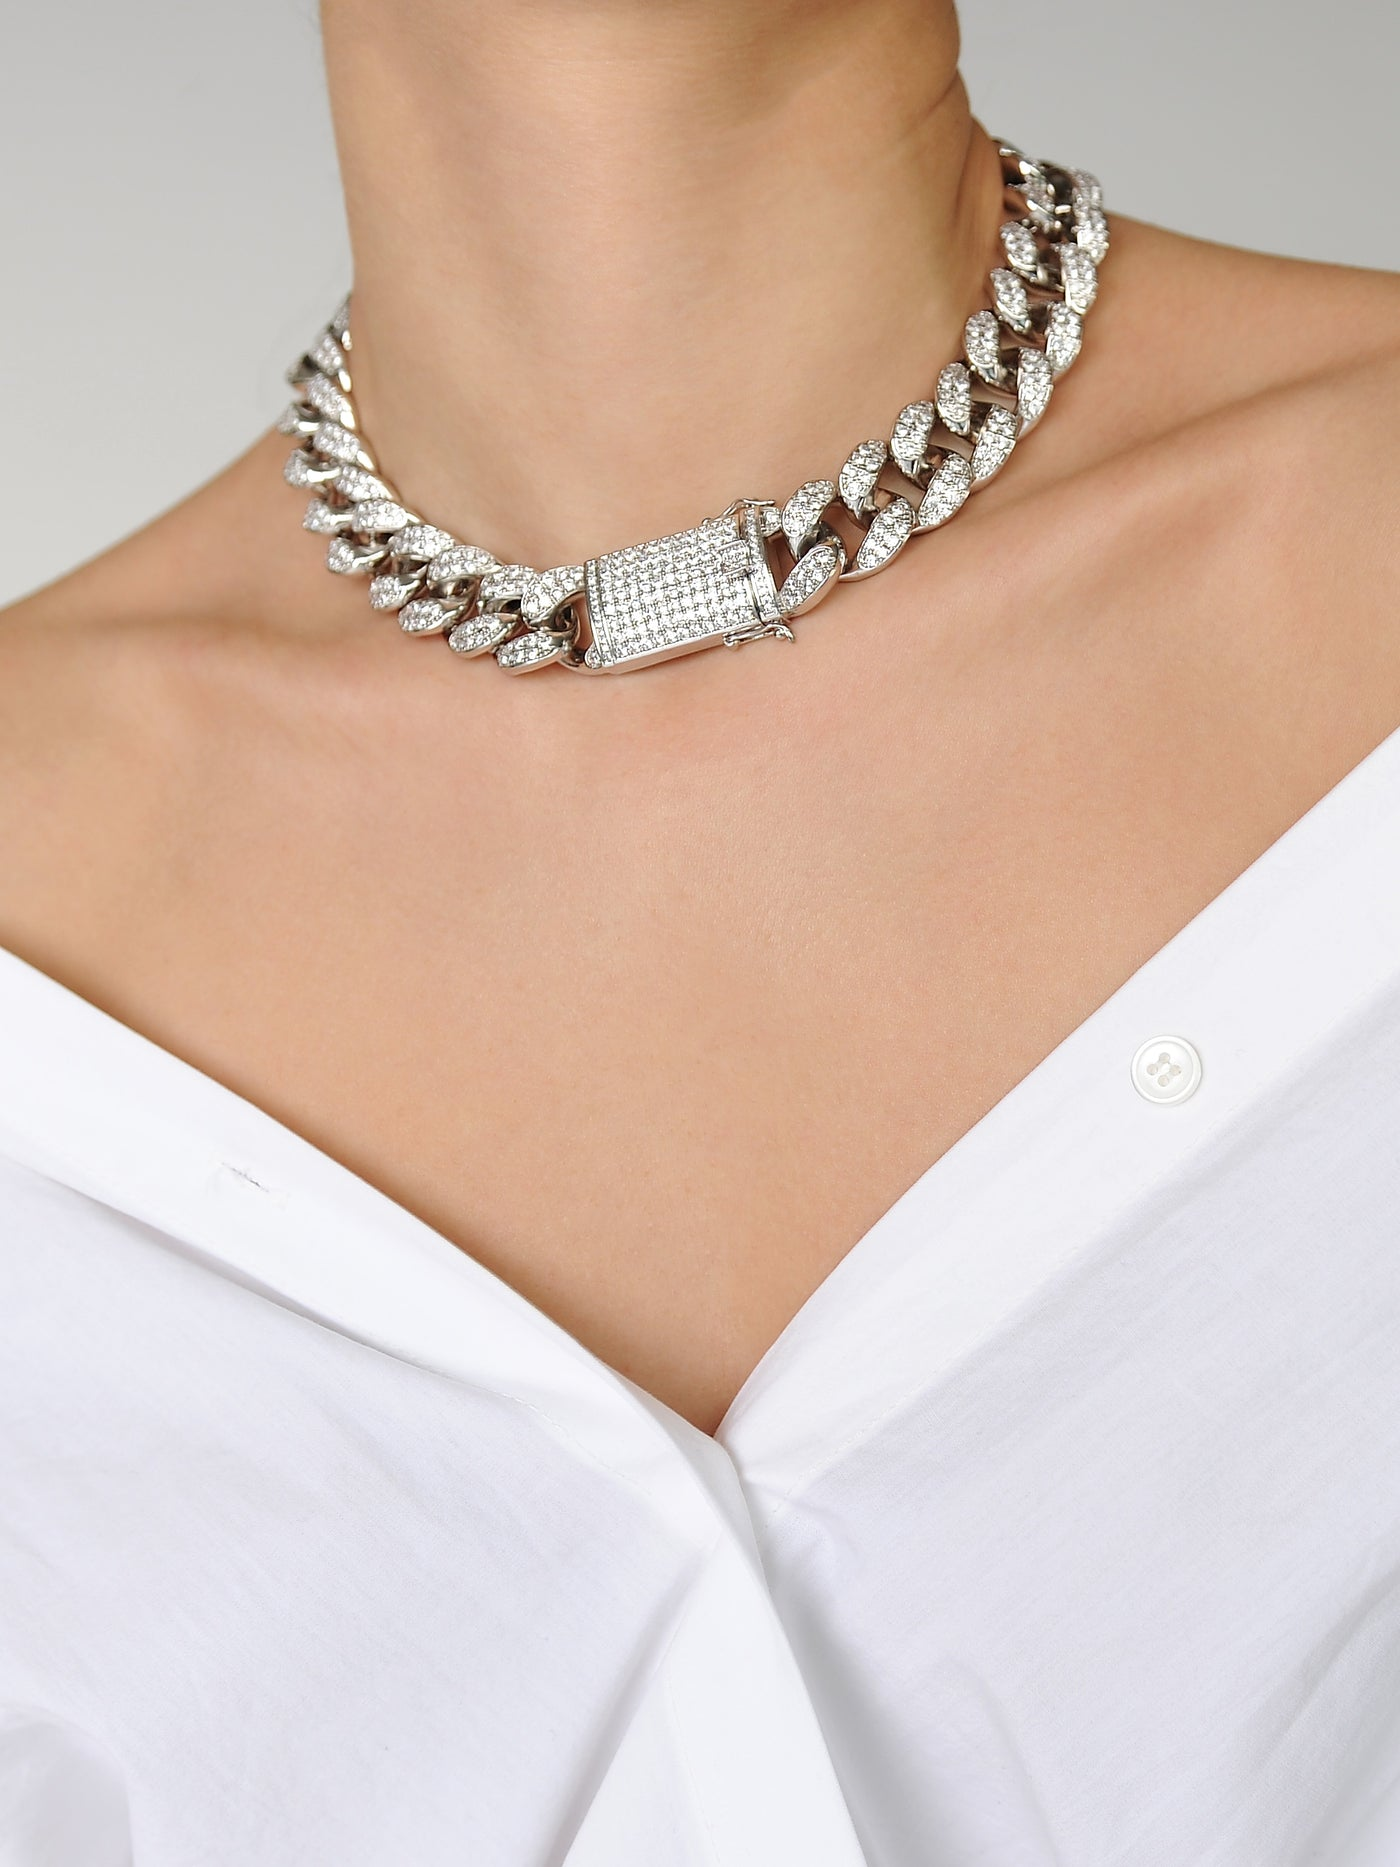 Chunky Lock Chain Necklace - Marble Hive